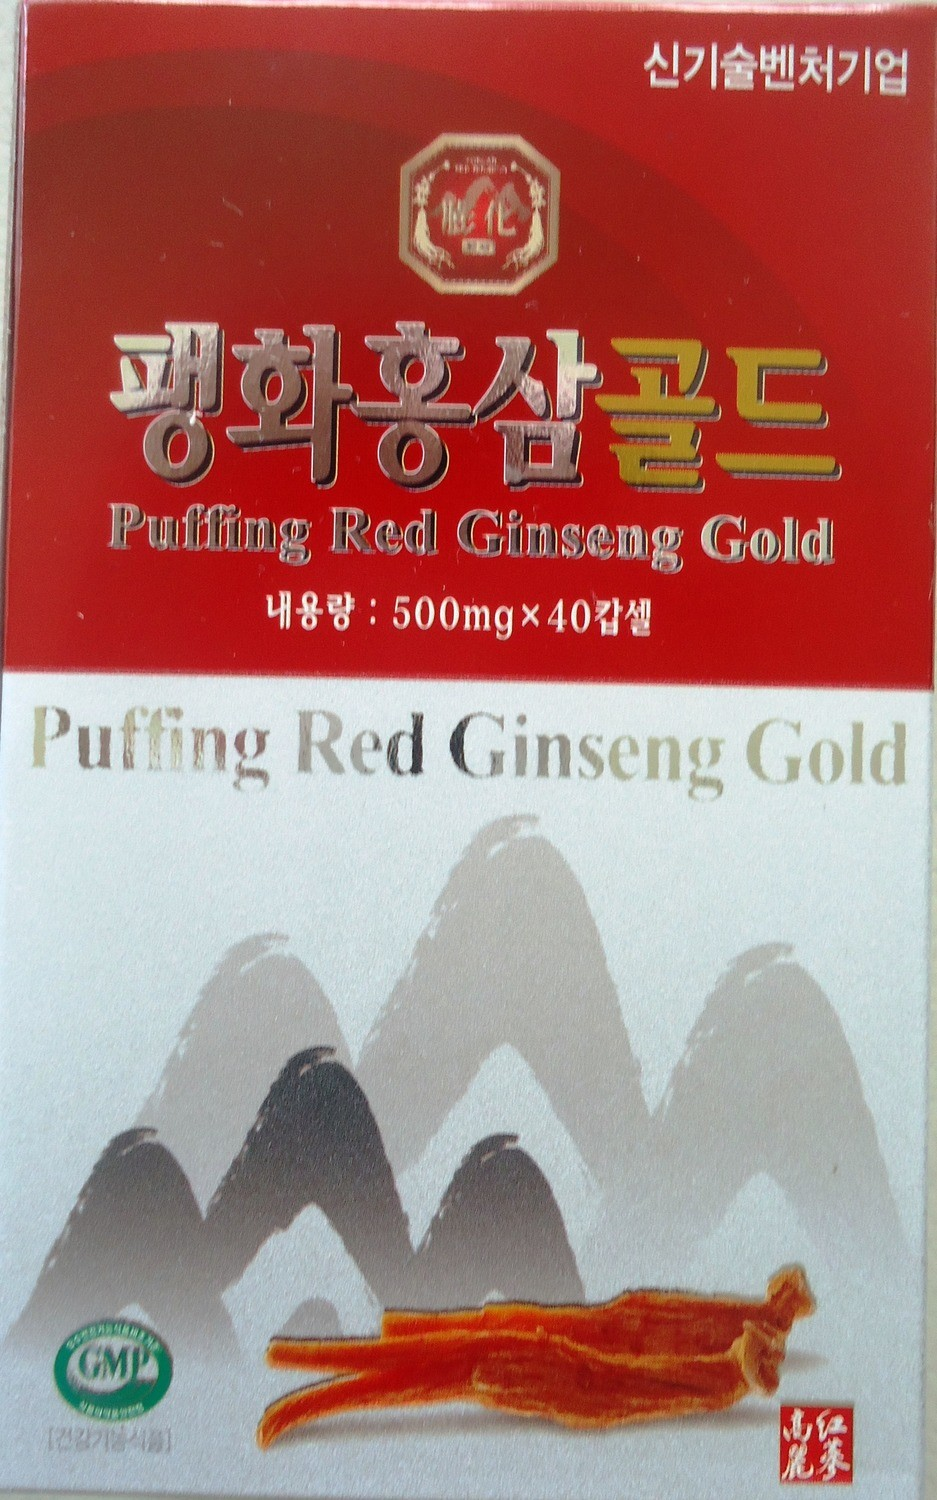 Puffing Red Ginseng Gold (500 mg x 40) Capsules